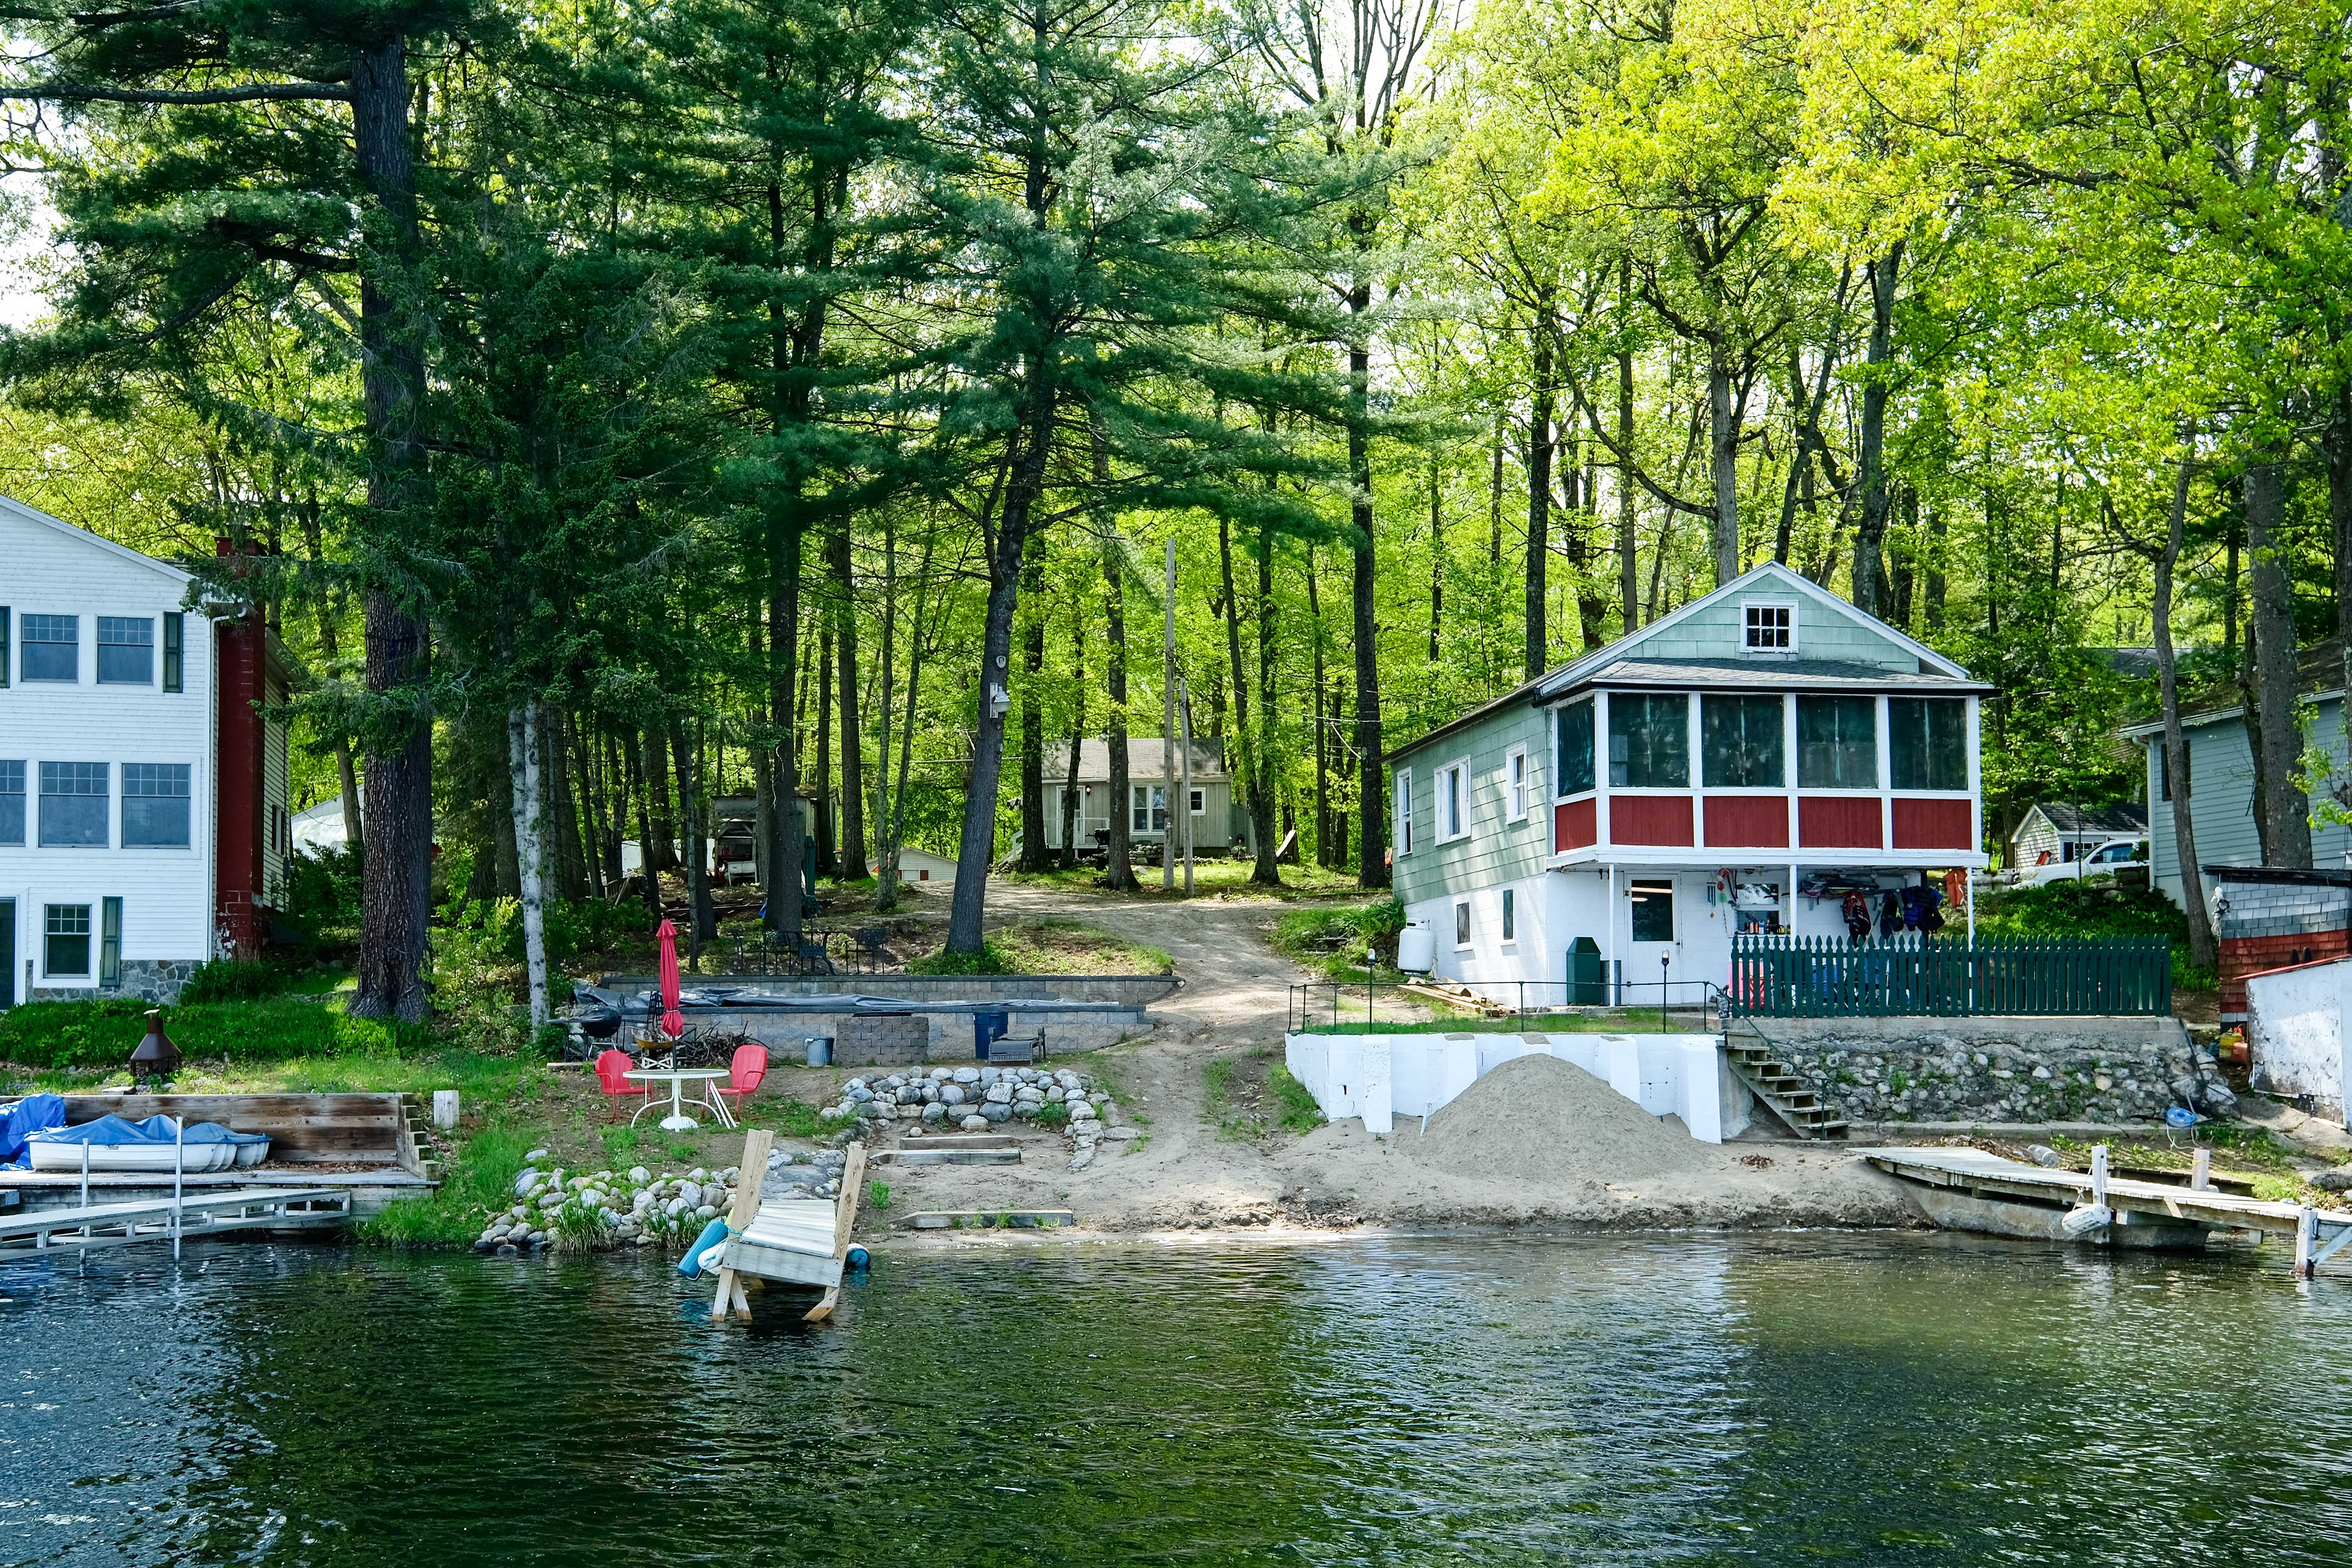 Make lifetime memories at this lakeside vacation rental for up to 4!